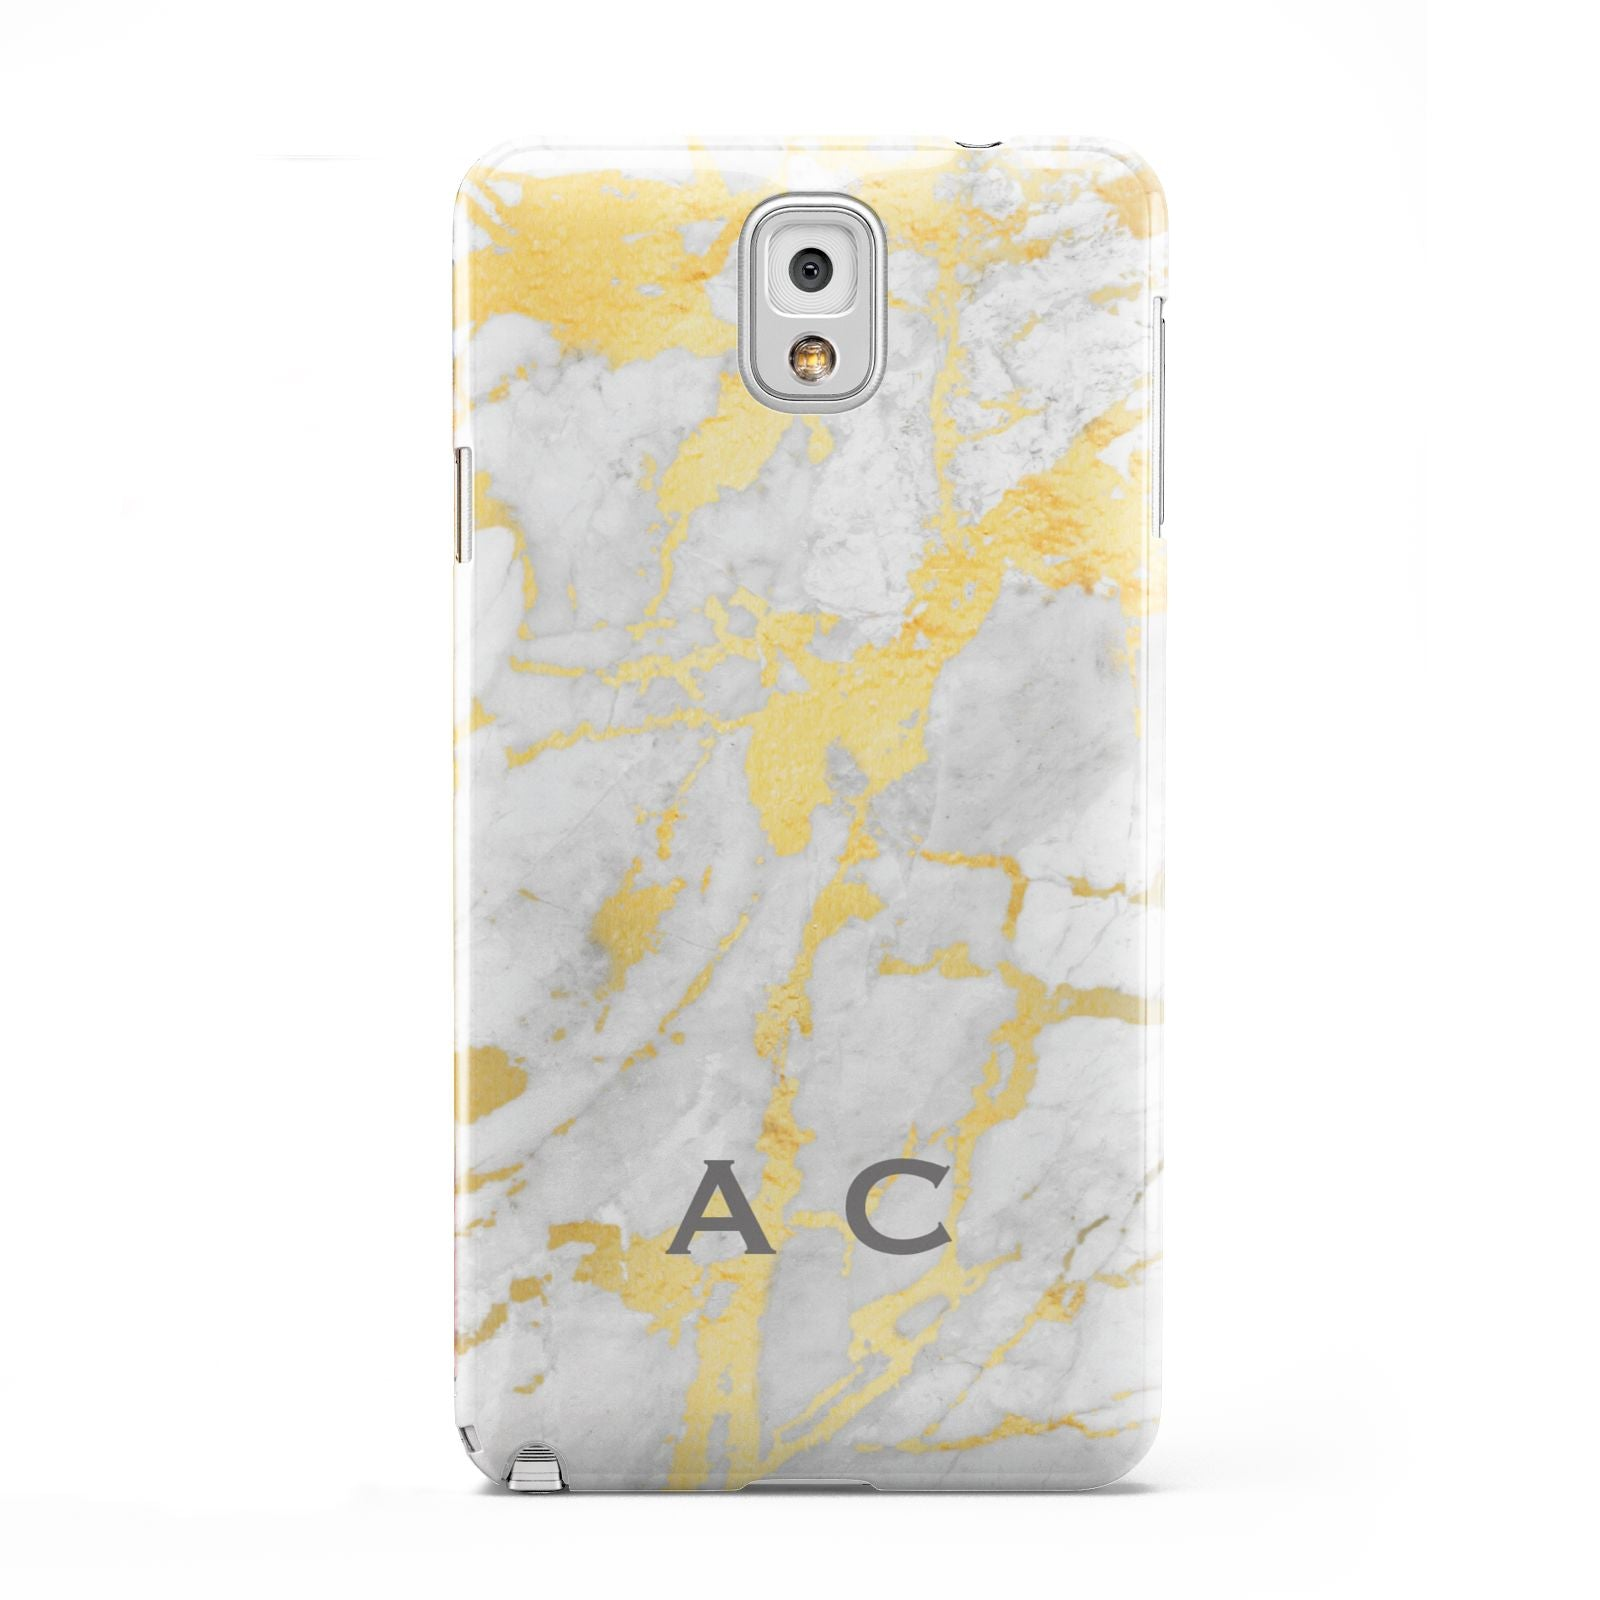 Gold Marble Initials Personalised Samsung Galaxy Note 3 Case